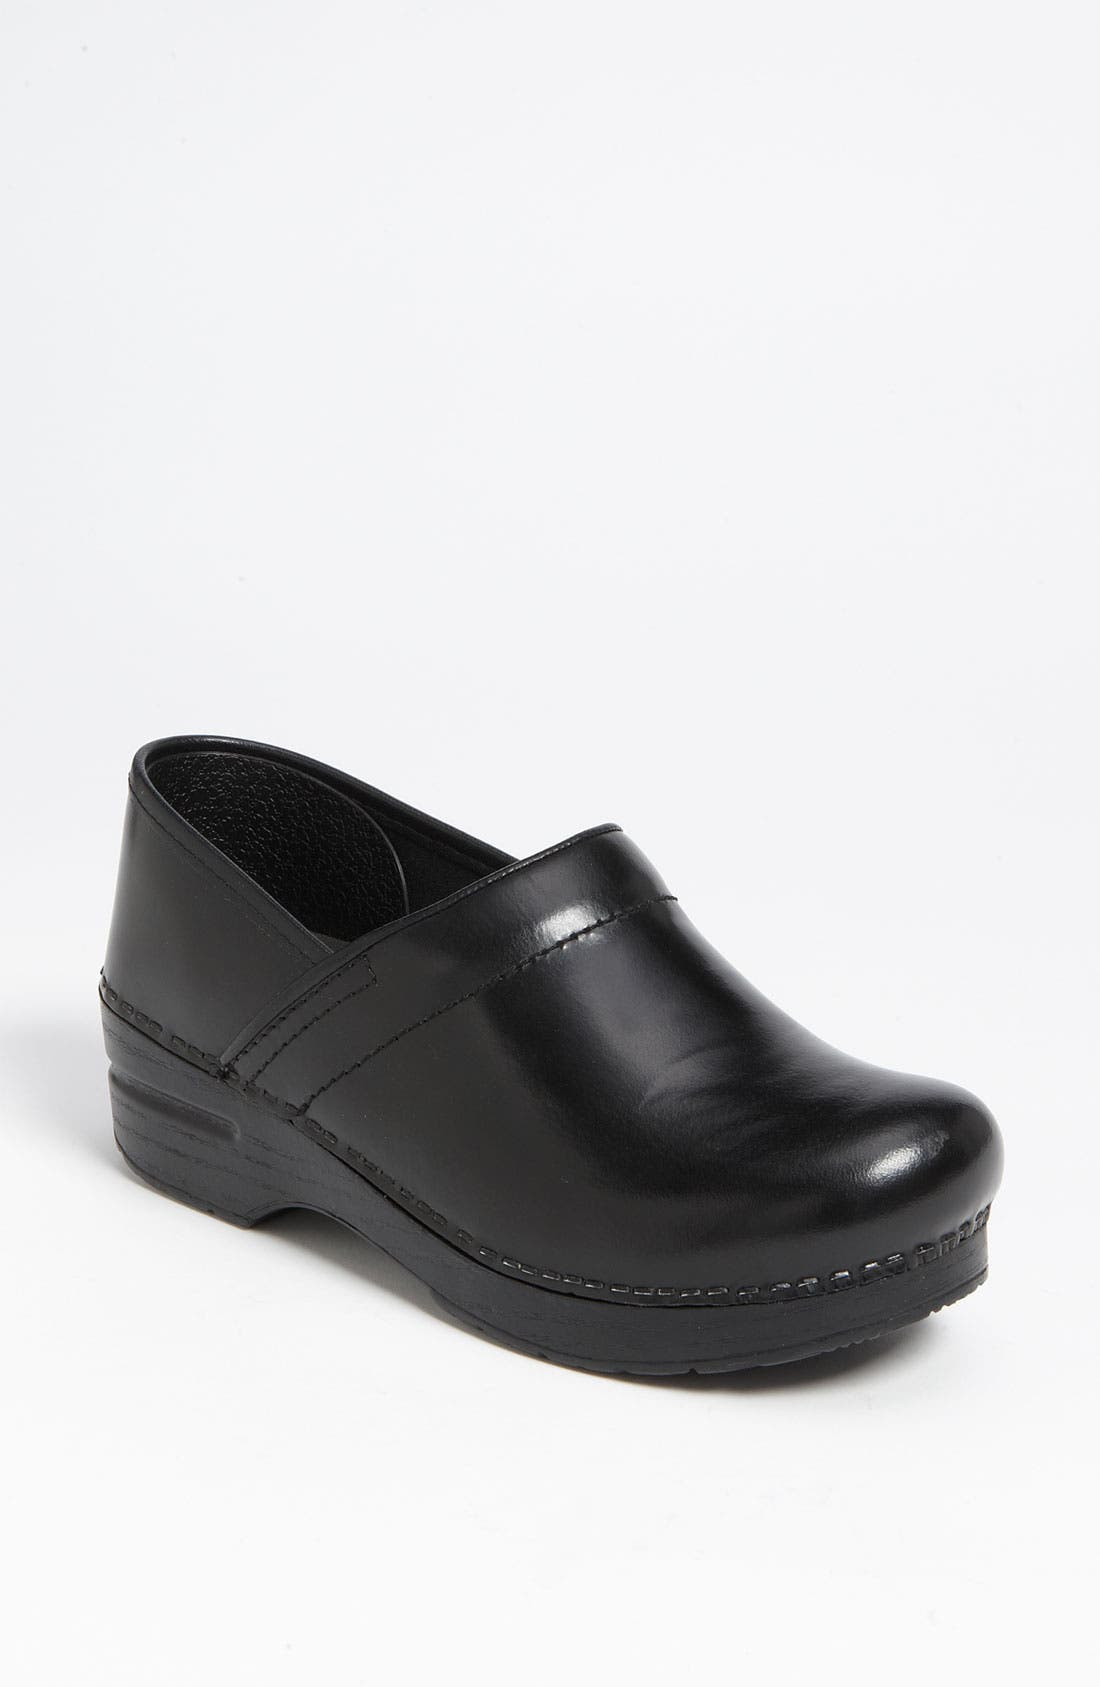 Alternate Image 1 Selected - Dansko 'Professional' Clog